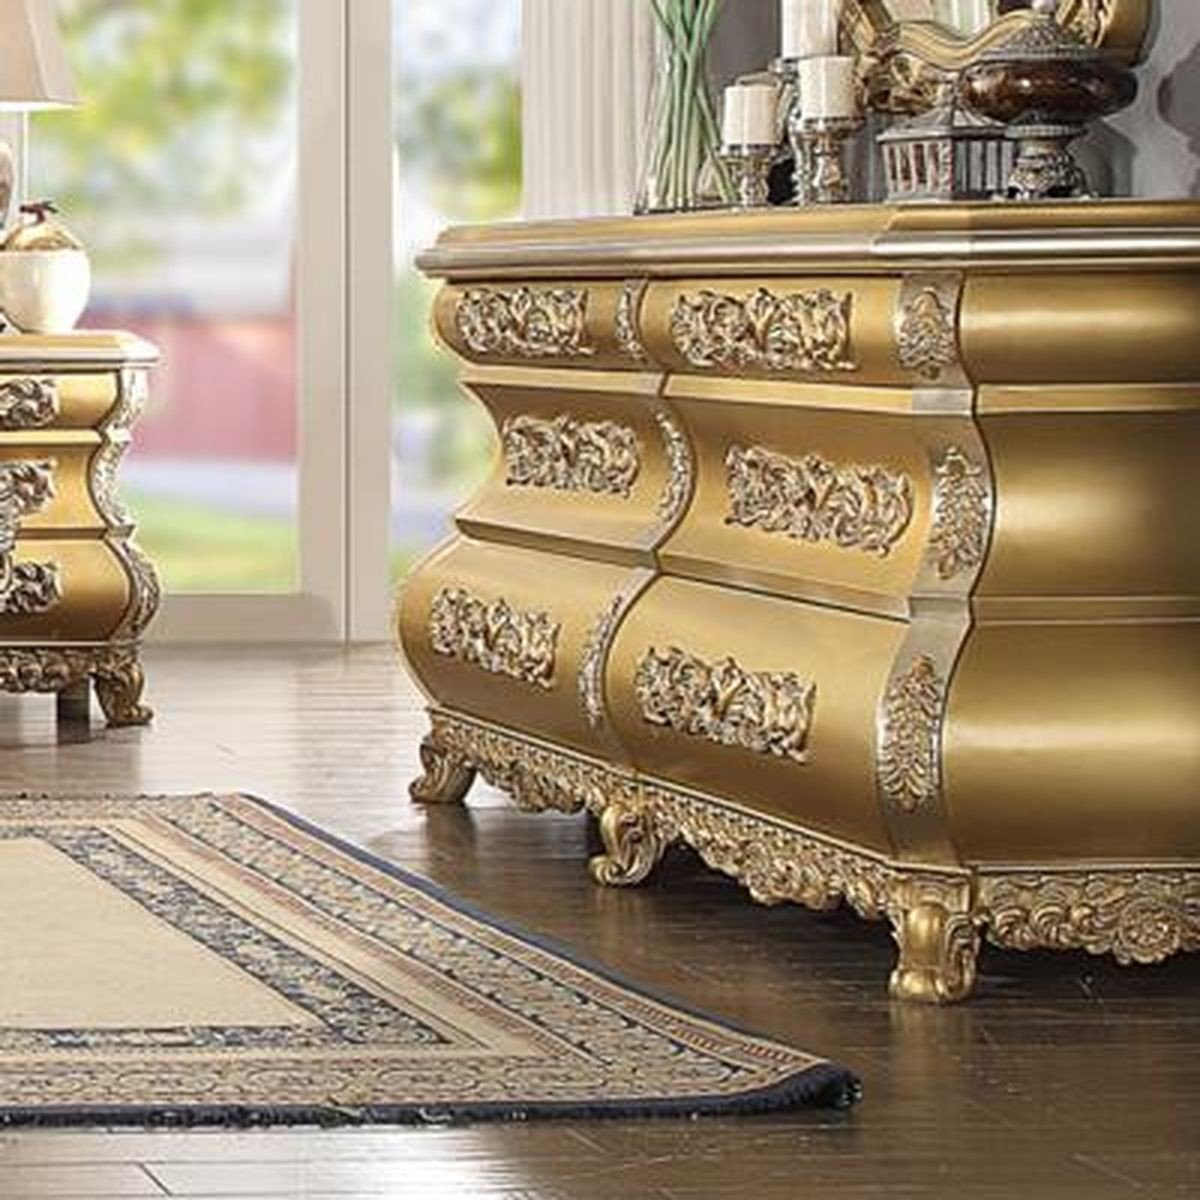 Traditional Royal Antique HD-8016 Dresser in Gold by Homey Design